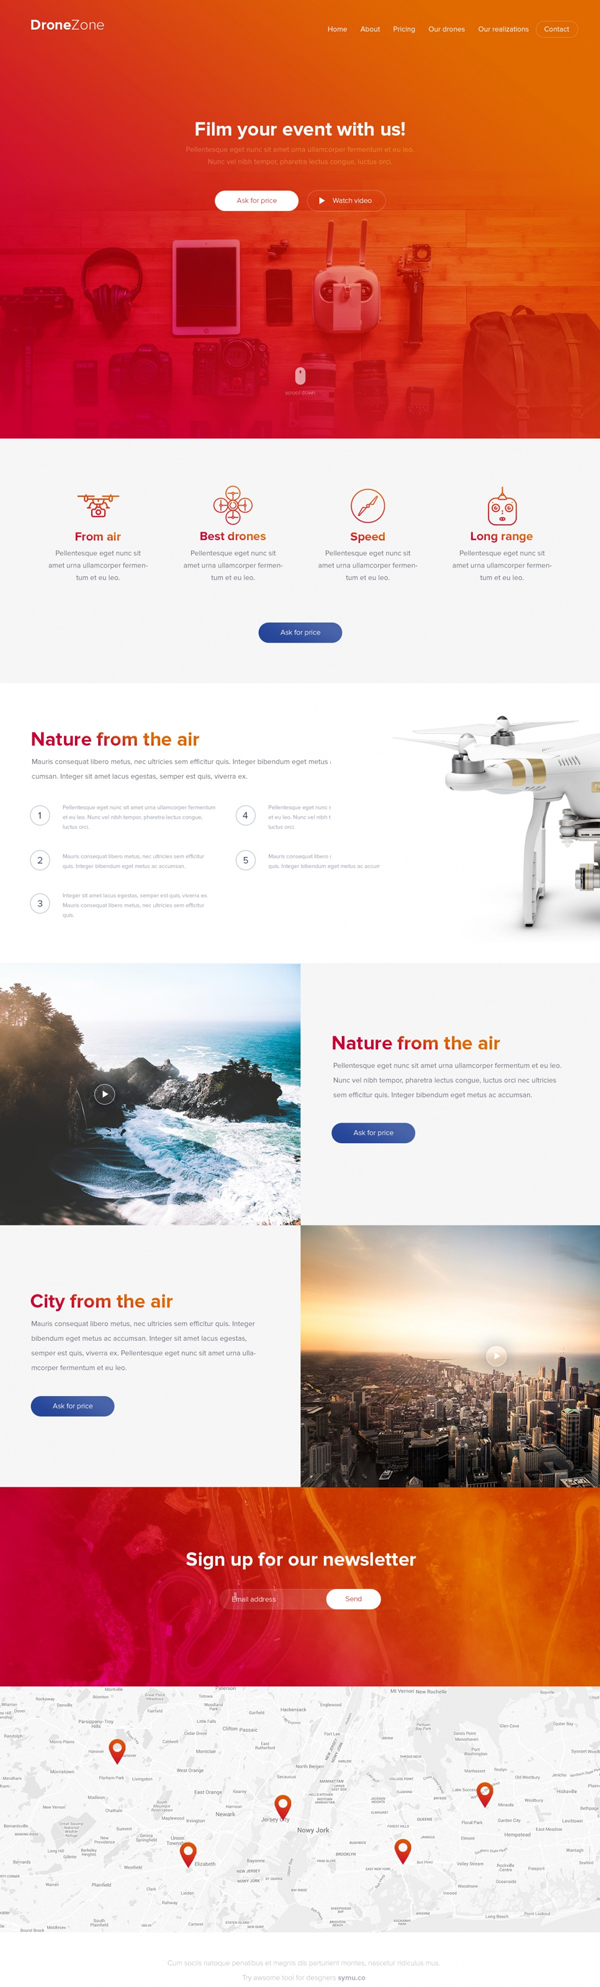 drone zone free psd website template - Free Web Templates